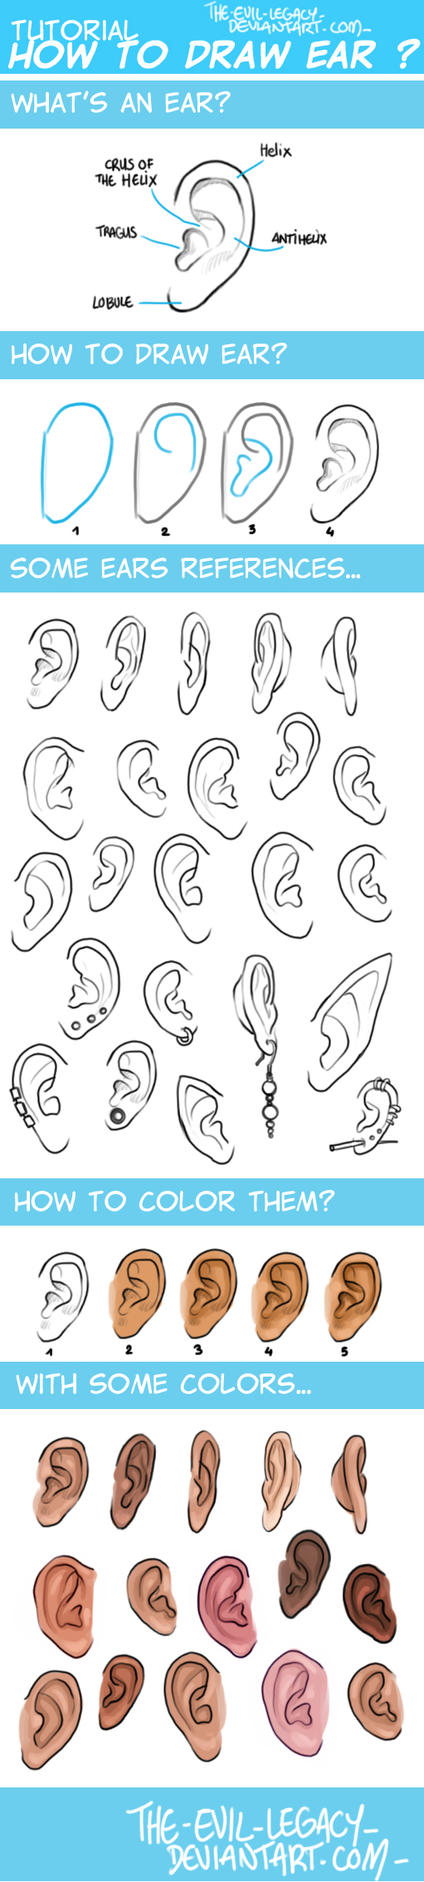 TUTO - How to draw ears? by the-evil-legacy